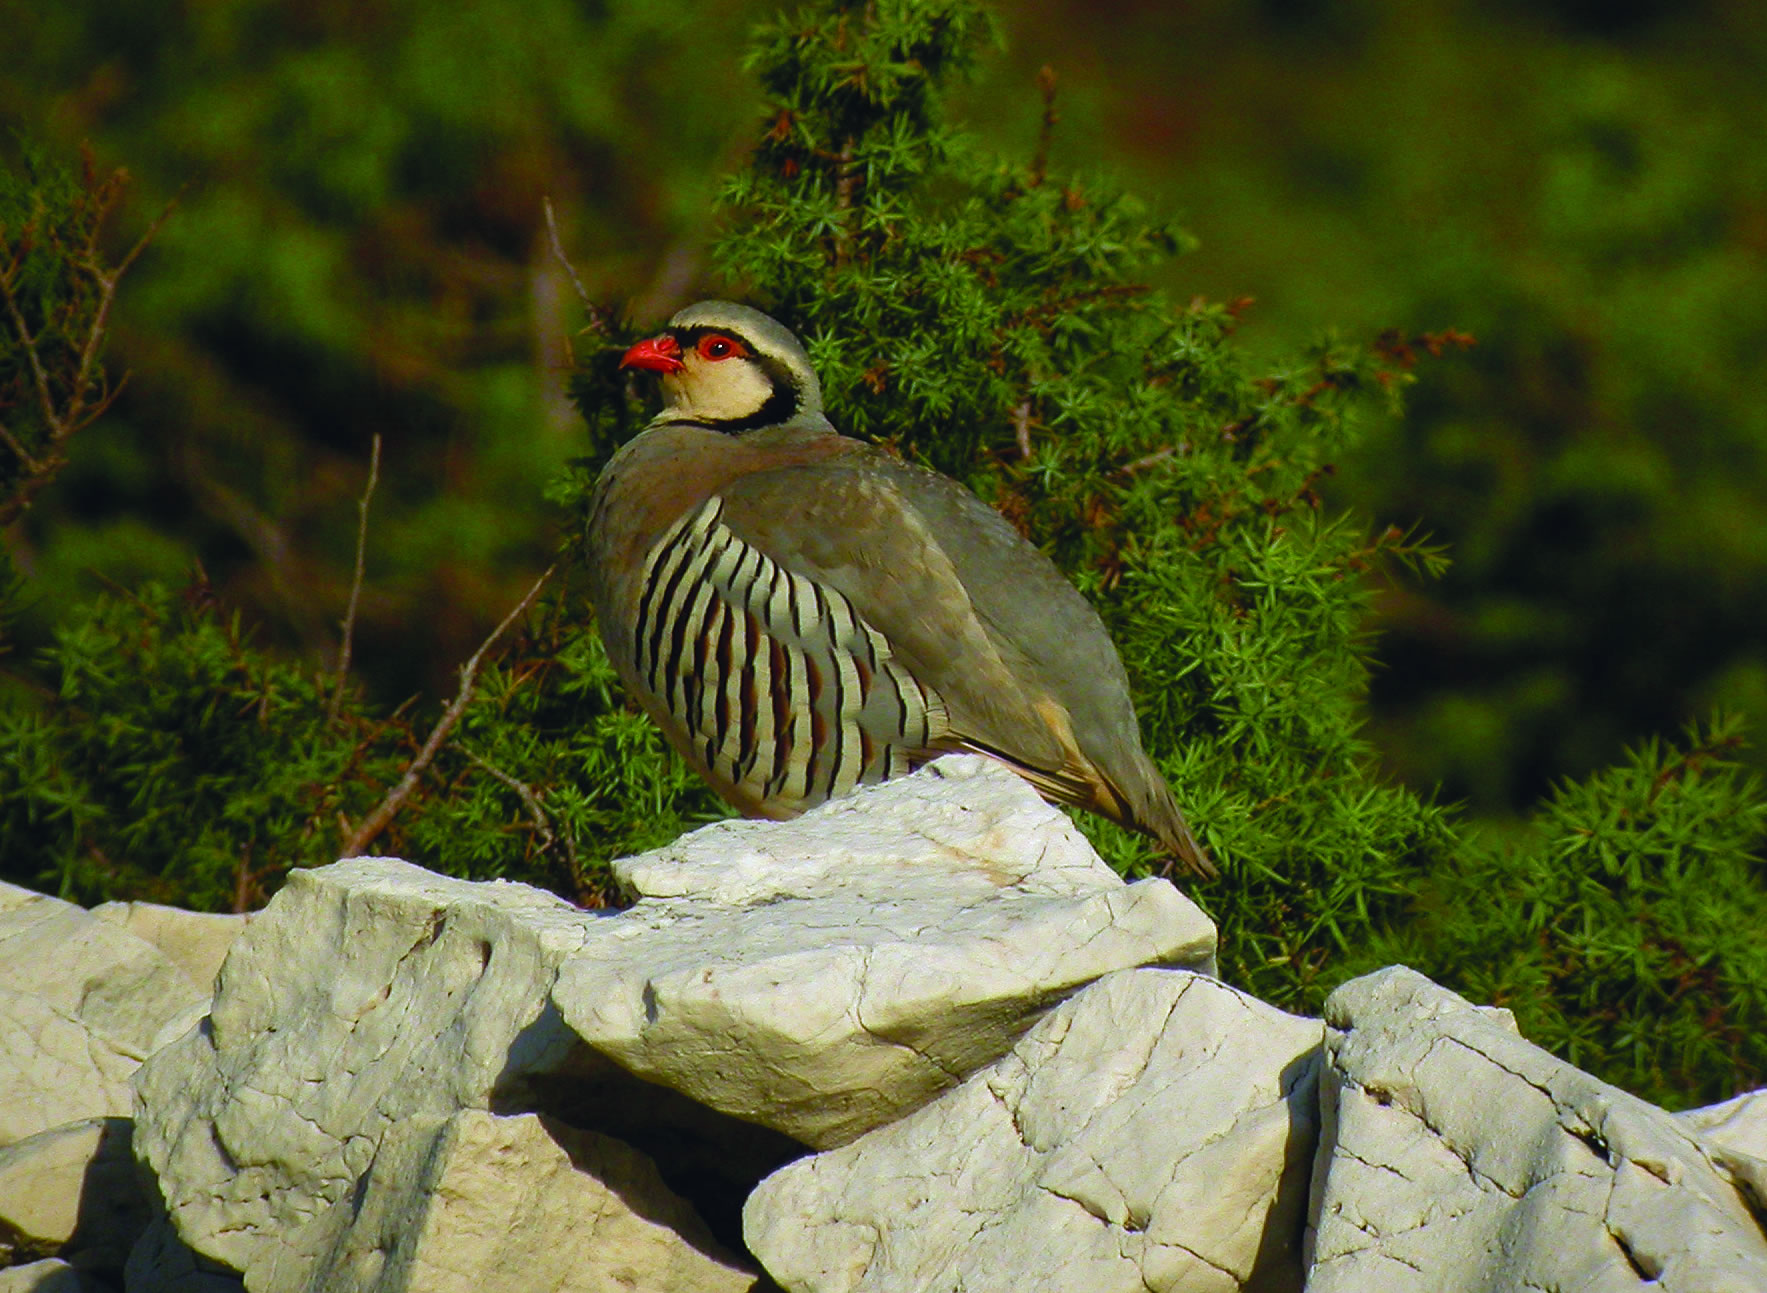 alectoris graeca - rock partridge